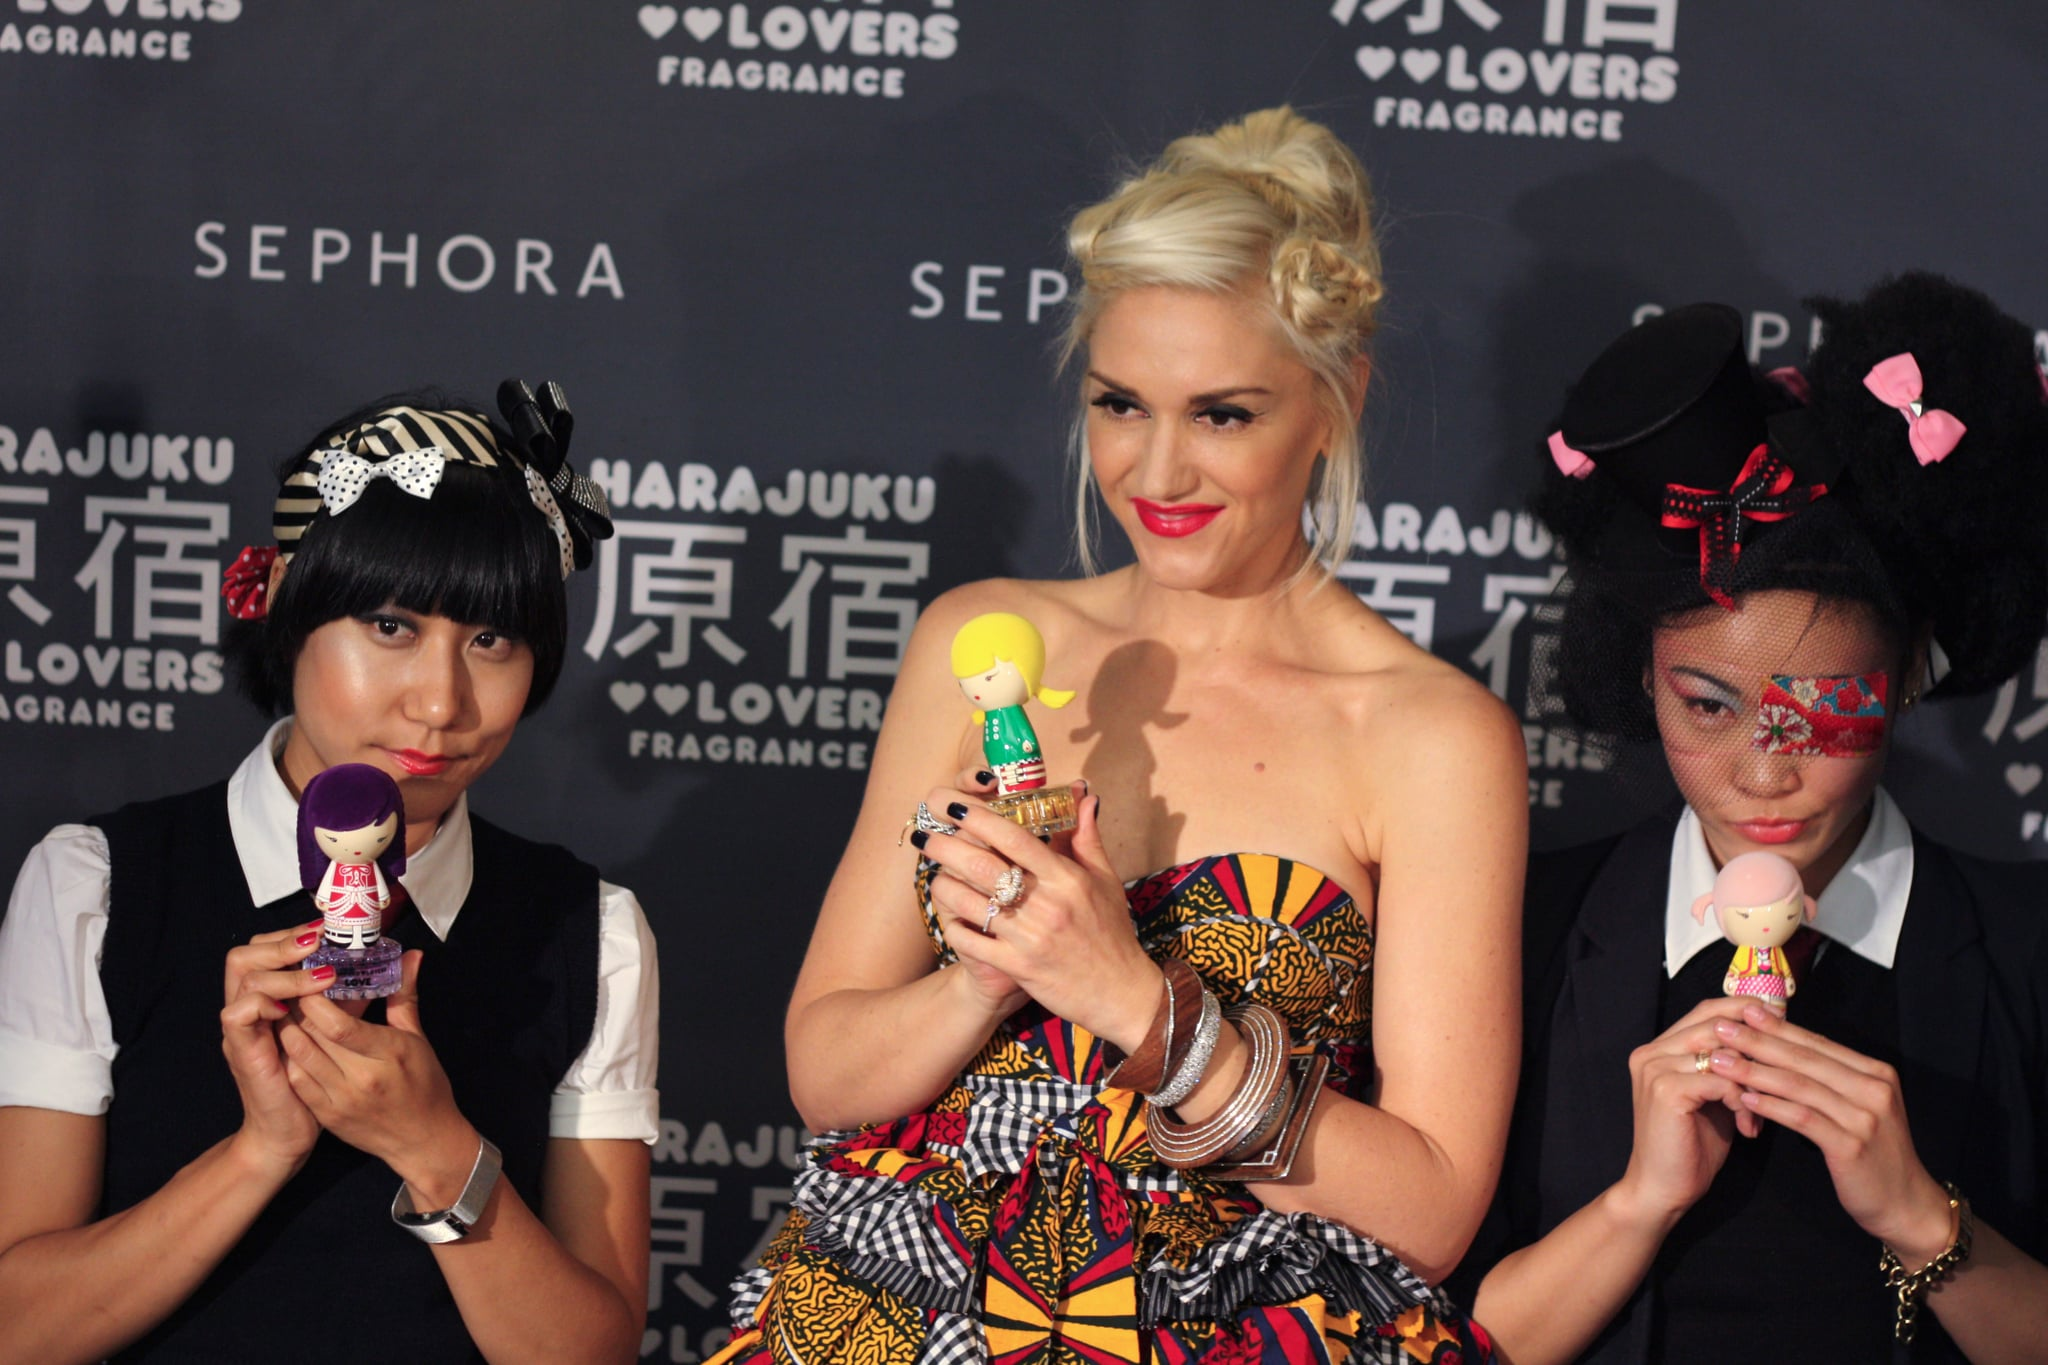 Harajuku Lovers By Gwen Stefani – Product Review